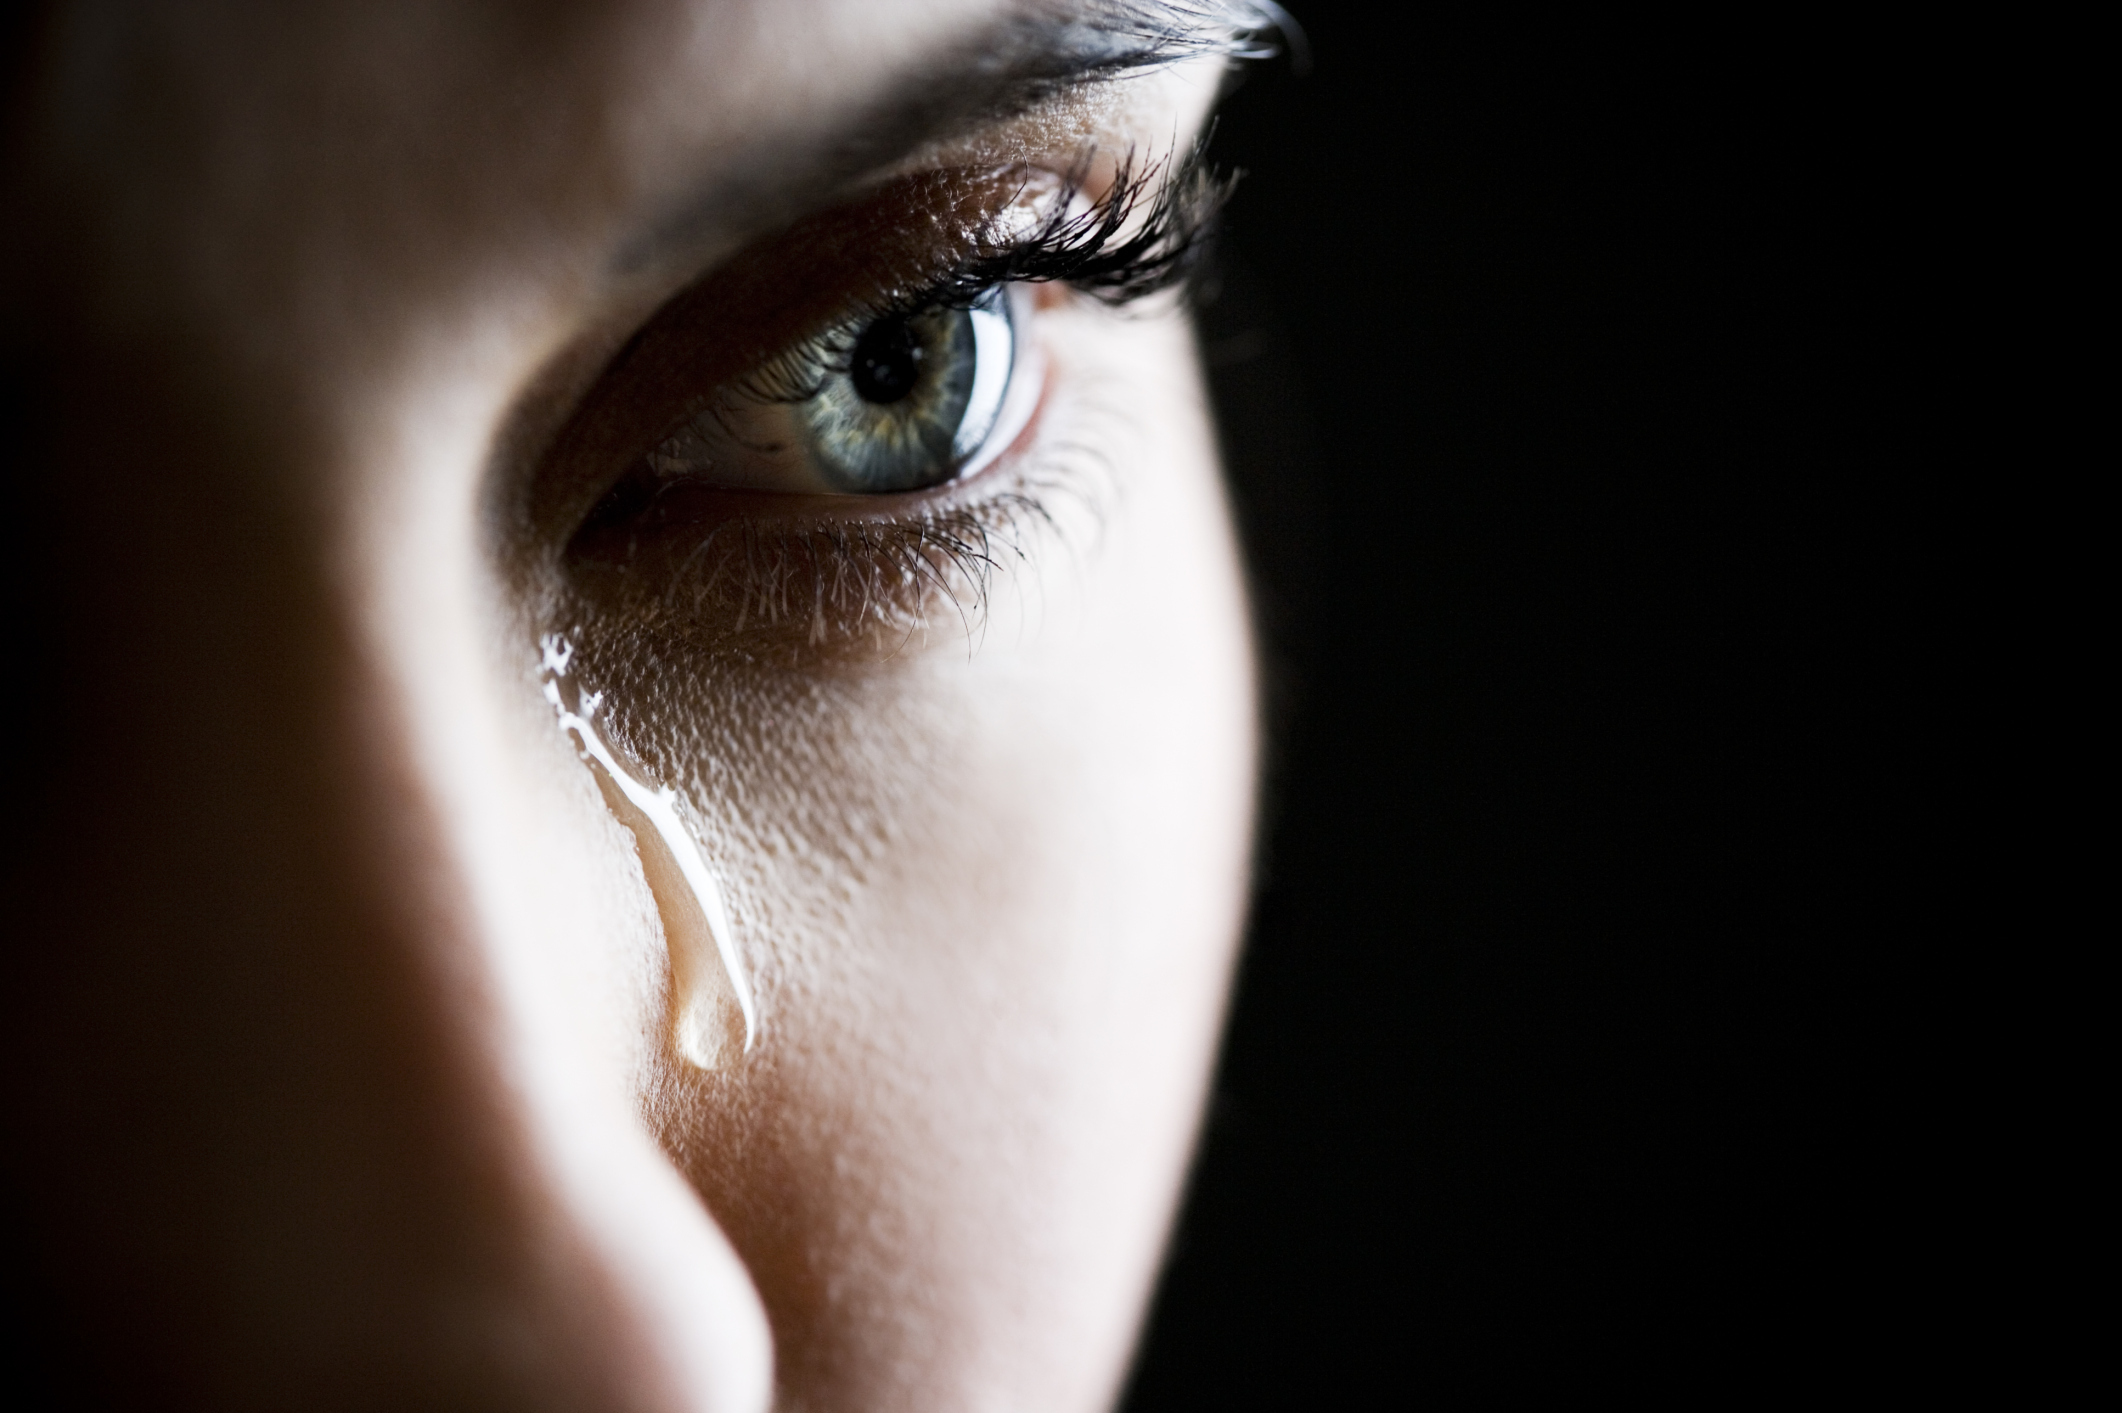 You Cry 3 Kinds Of Tears Depending On The Kind Of Sobfest Youre